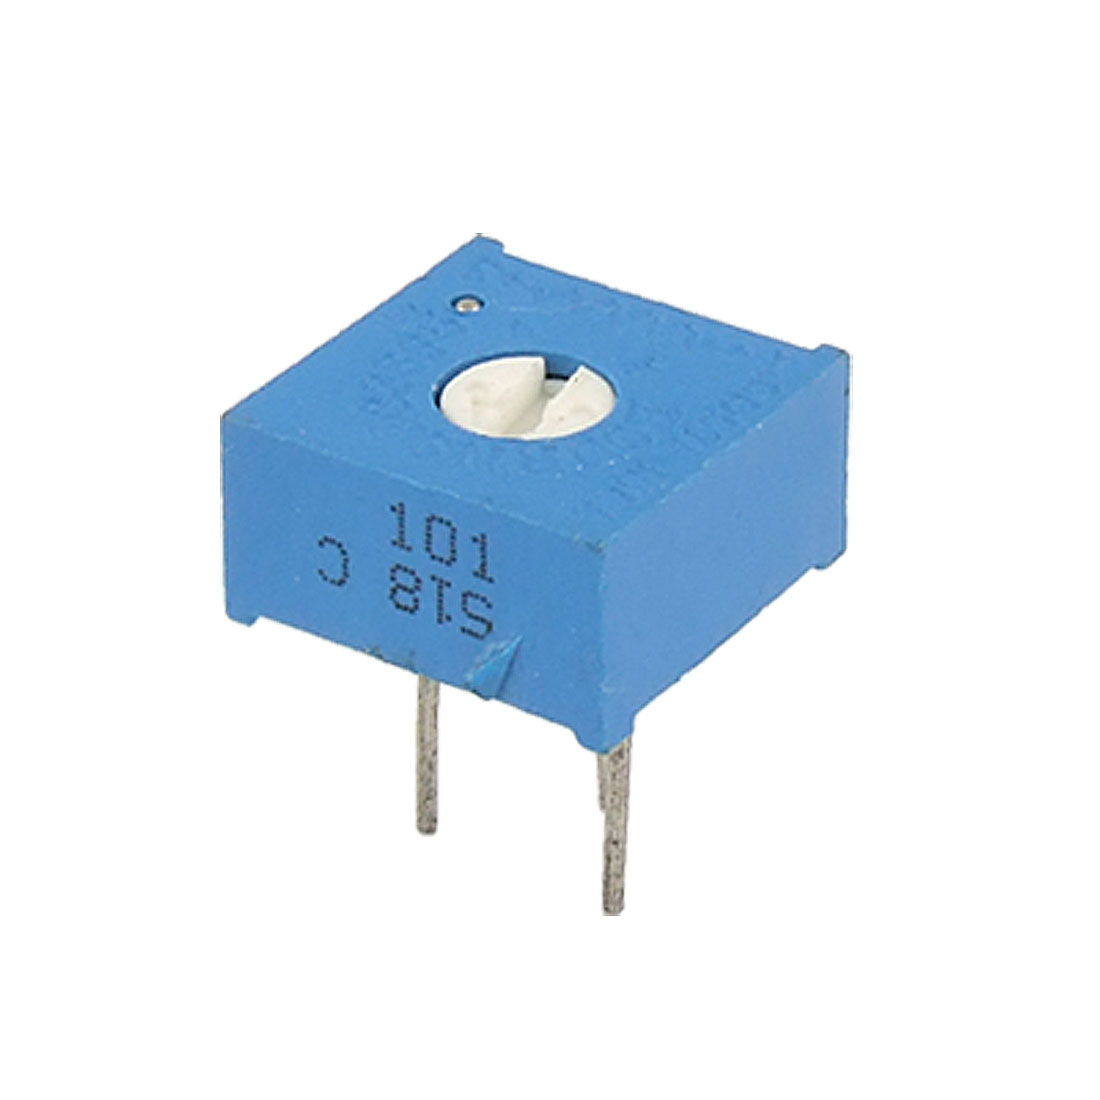 101 100 Ohm Cermet Trimmer Potentiometer Variable Resistor 50 Pcs